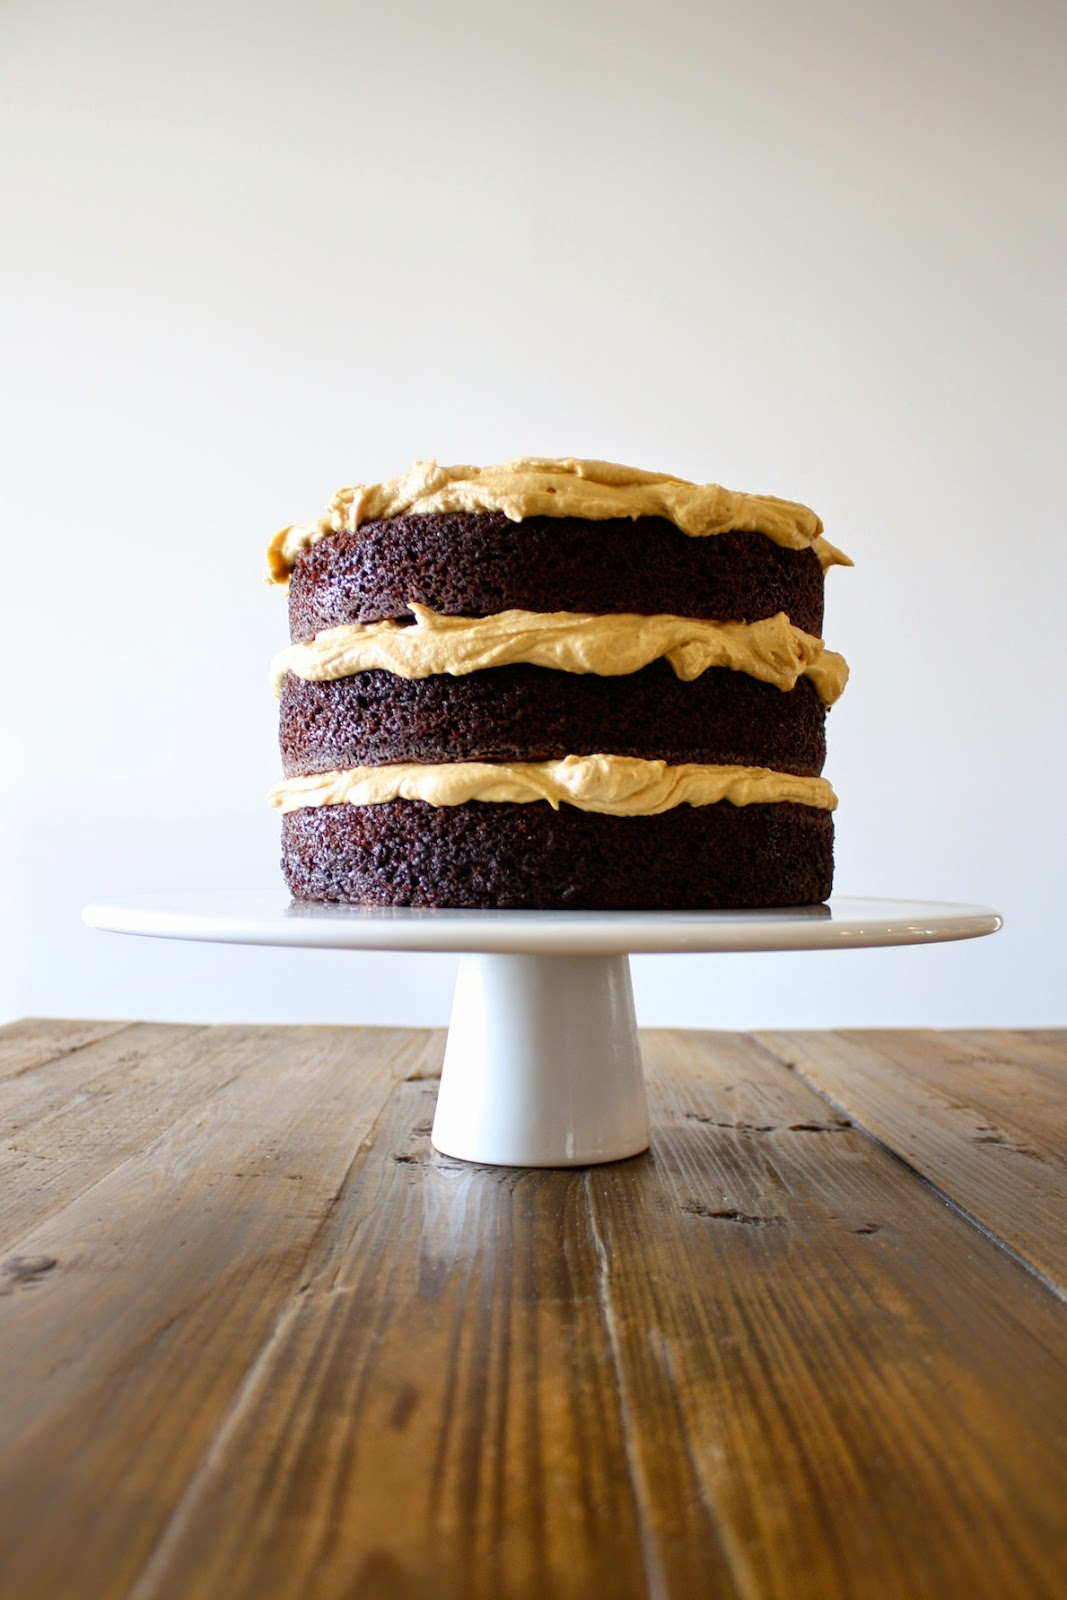 Reese's Peanut Butter Chocolate Cake - Rich and delicious chocolate cake with a whipped peanut butter frosting and mini Reese's peanut butter cups. | livforcake.com